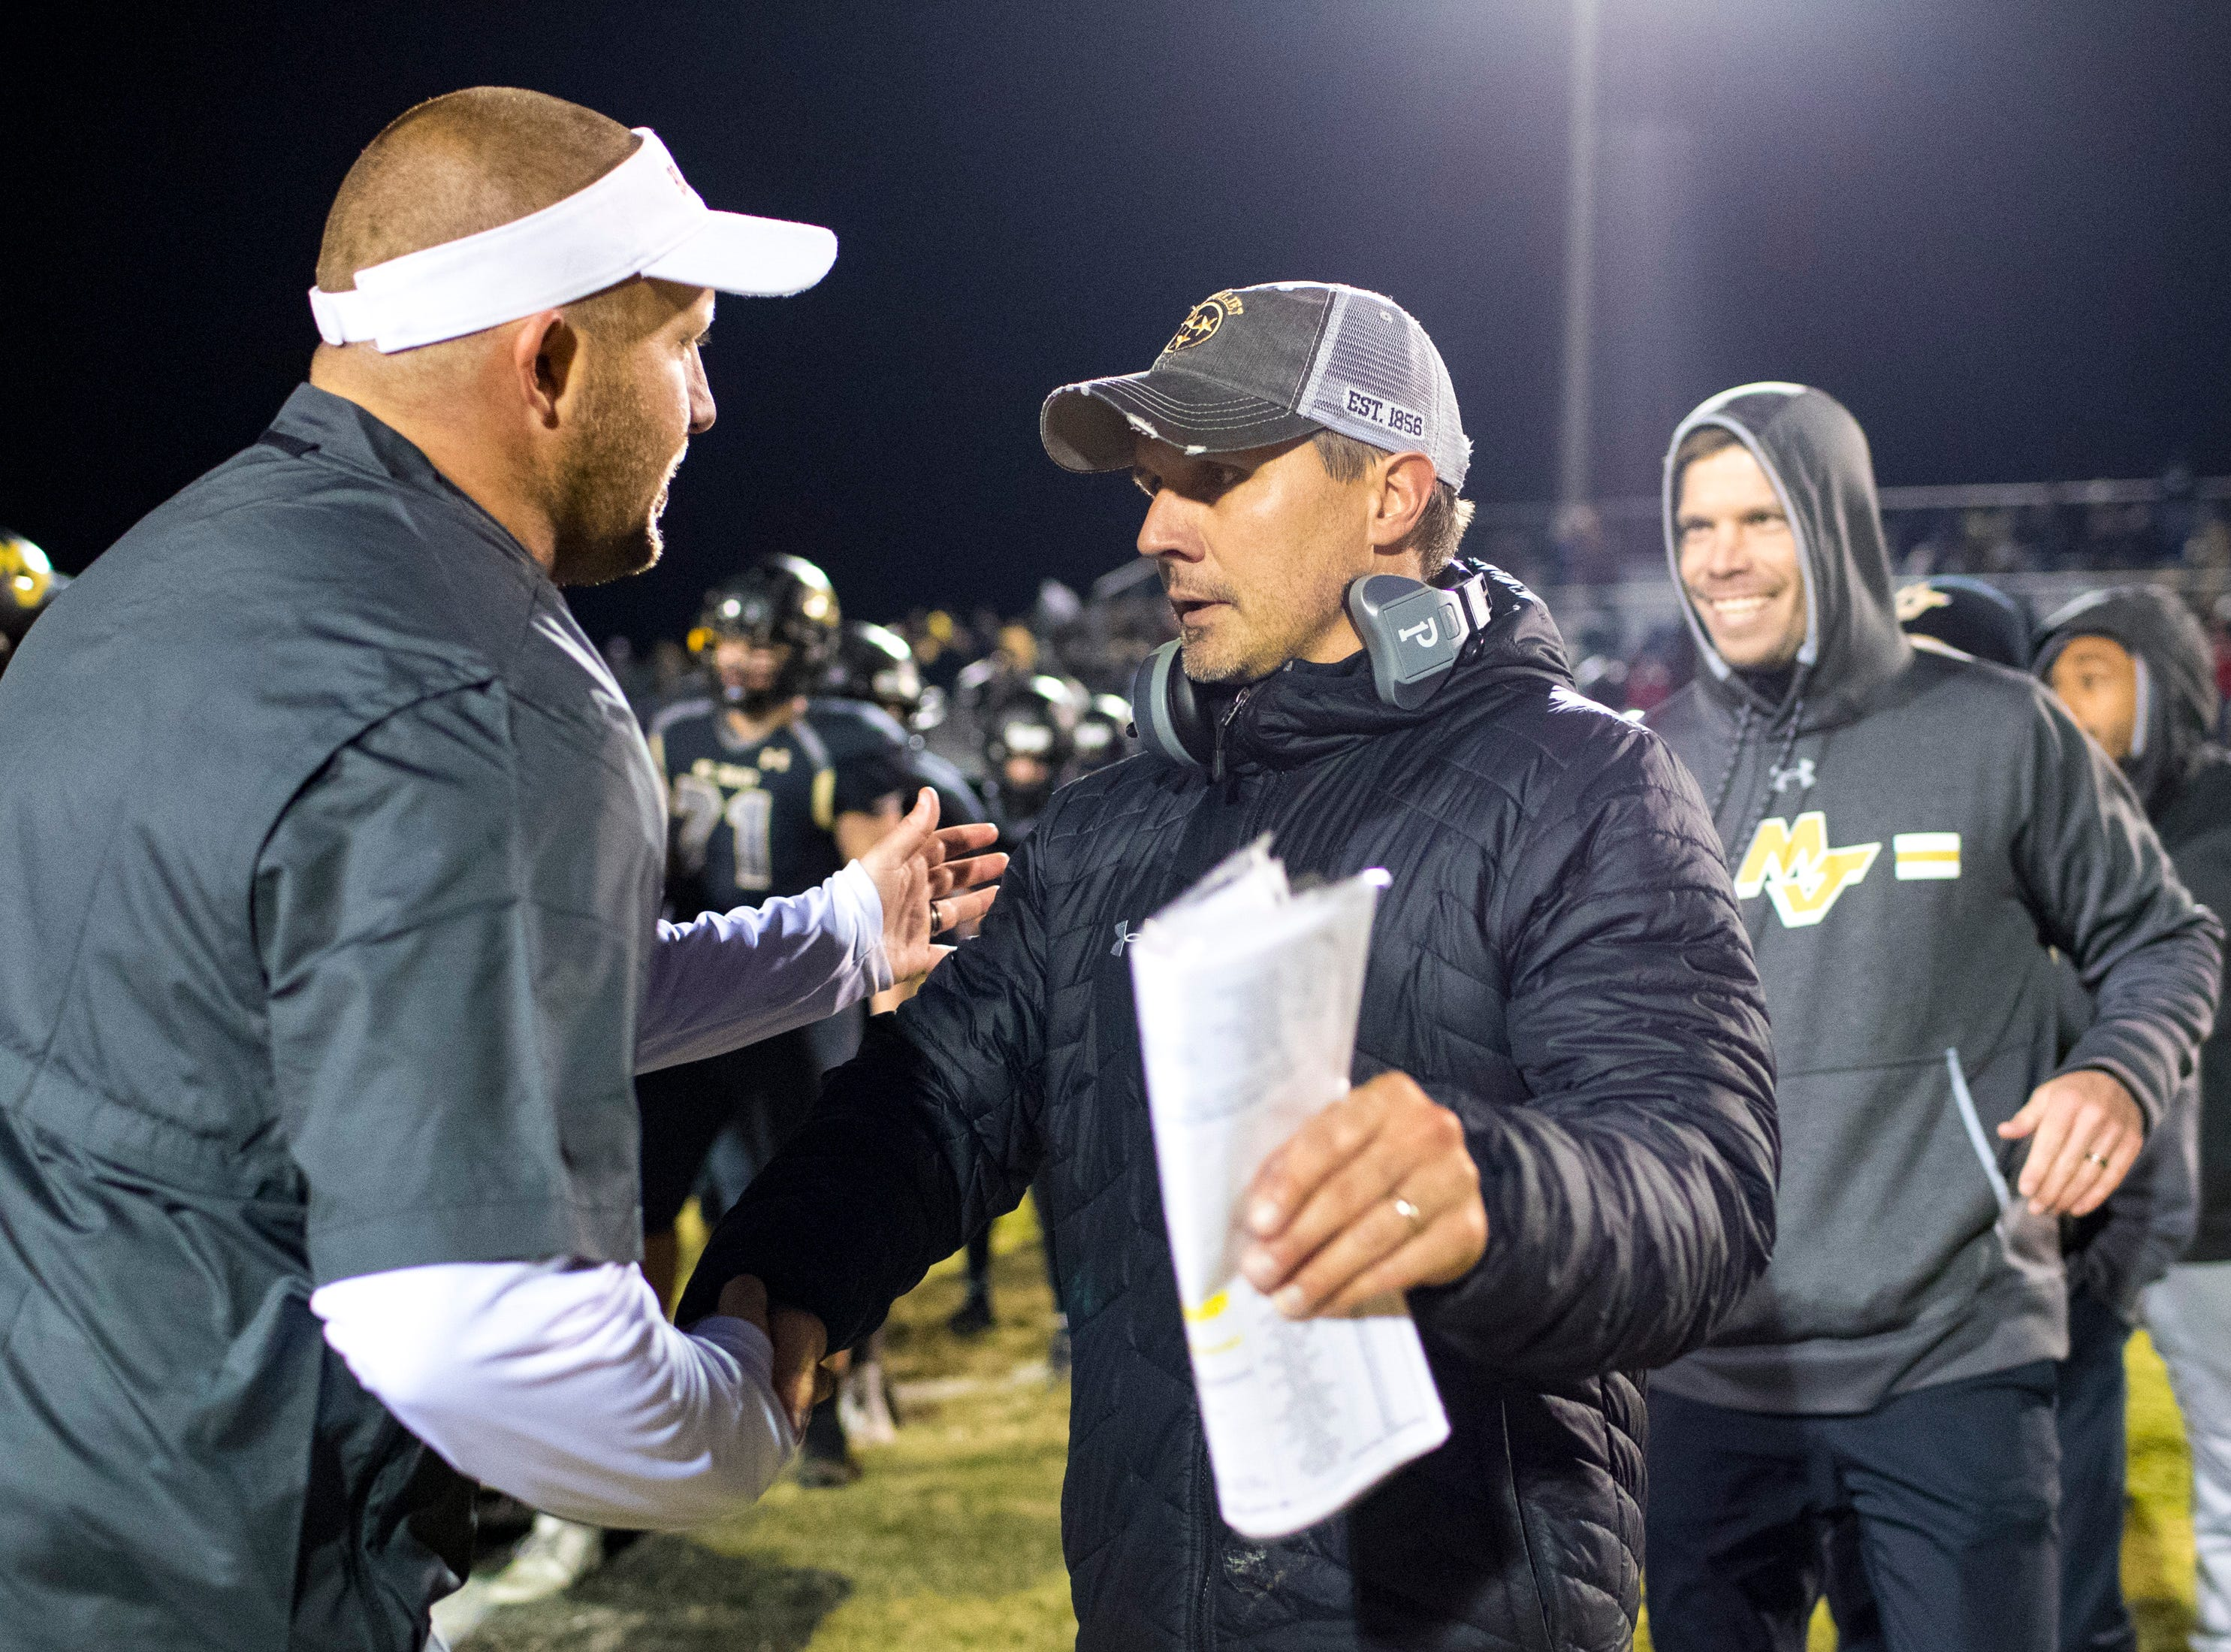 Mt. Juliet's head coach Trey Perry and Blackman's head coach Kit Hartsfield shake hands after Mt. Juliet's game against Blackman at Mt. Juliet High School in Mt. Juliet on Friday, Nov. 9, 2018.